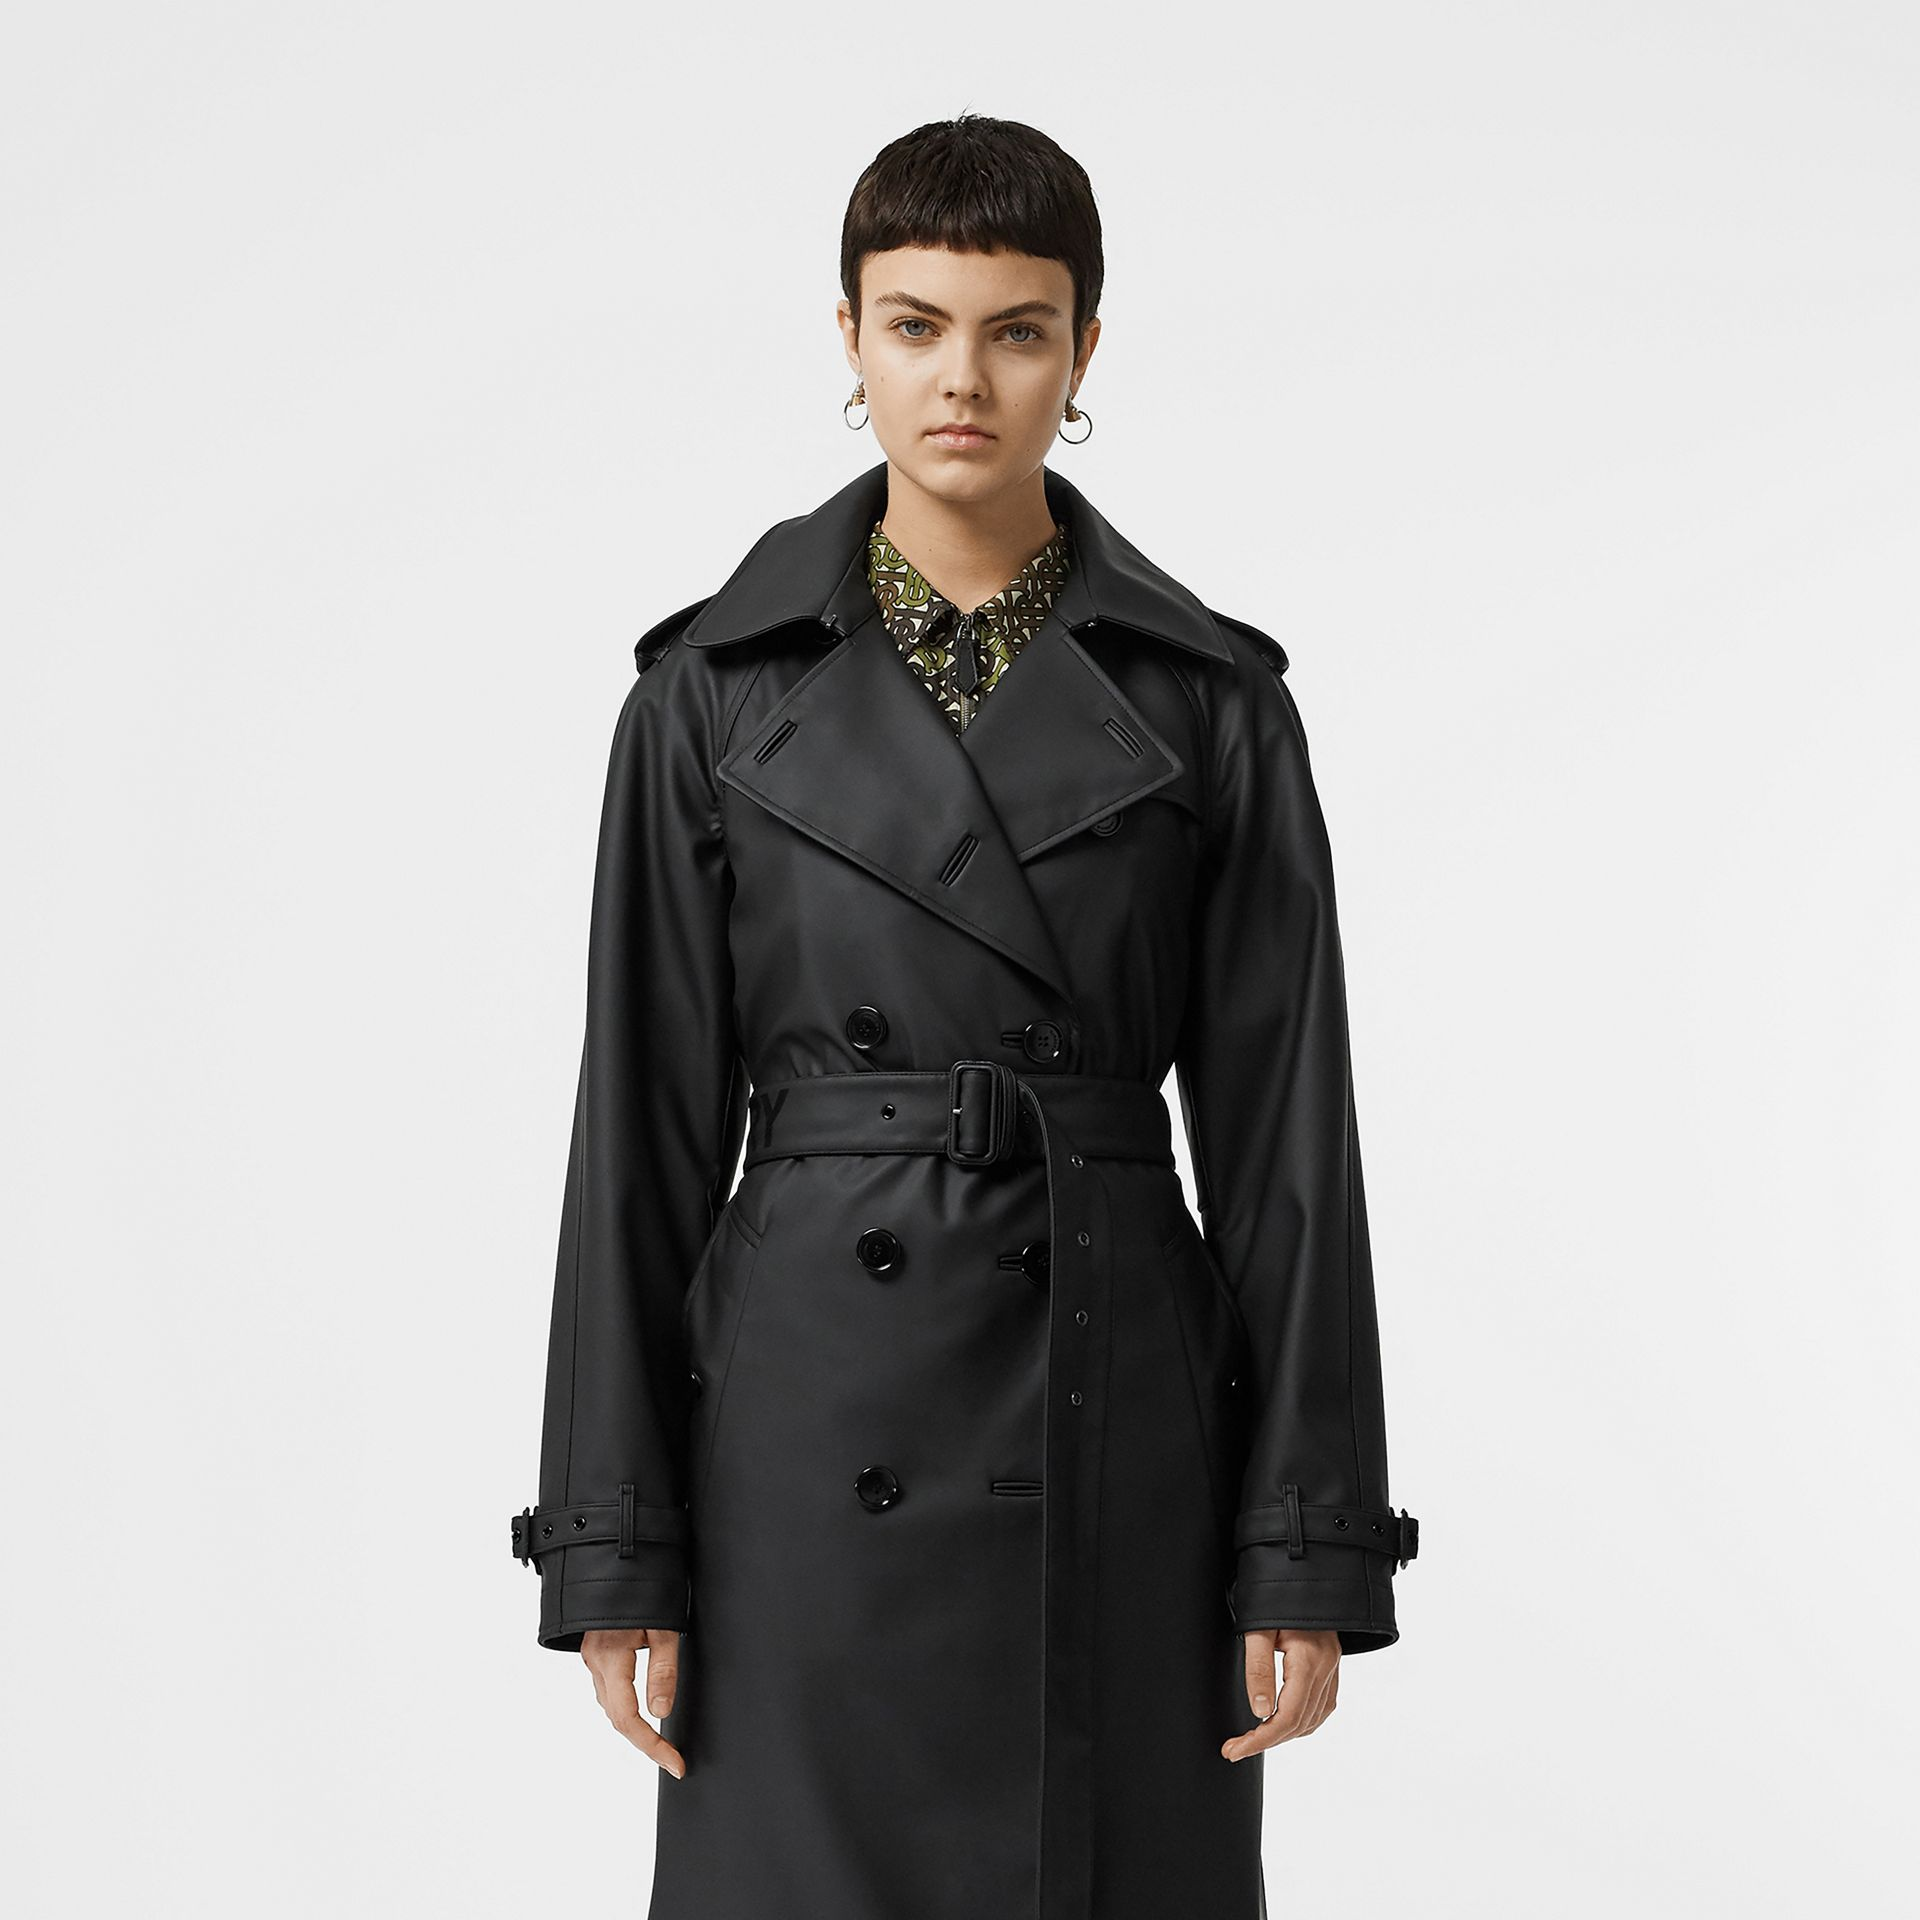 Logo Detail Showerproof Trench Coat in Black/white - Women | Burberry - gallery image 9